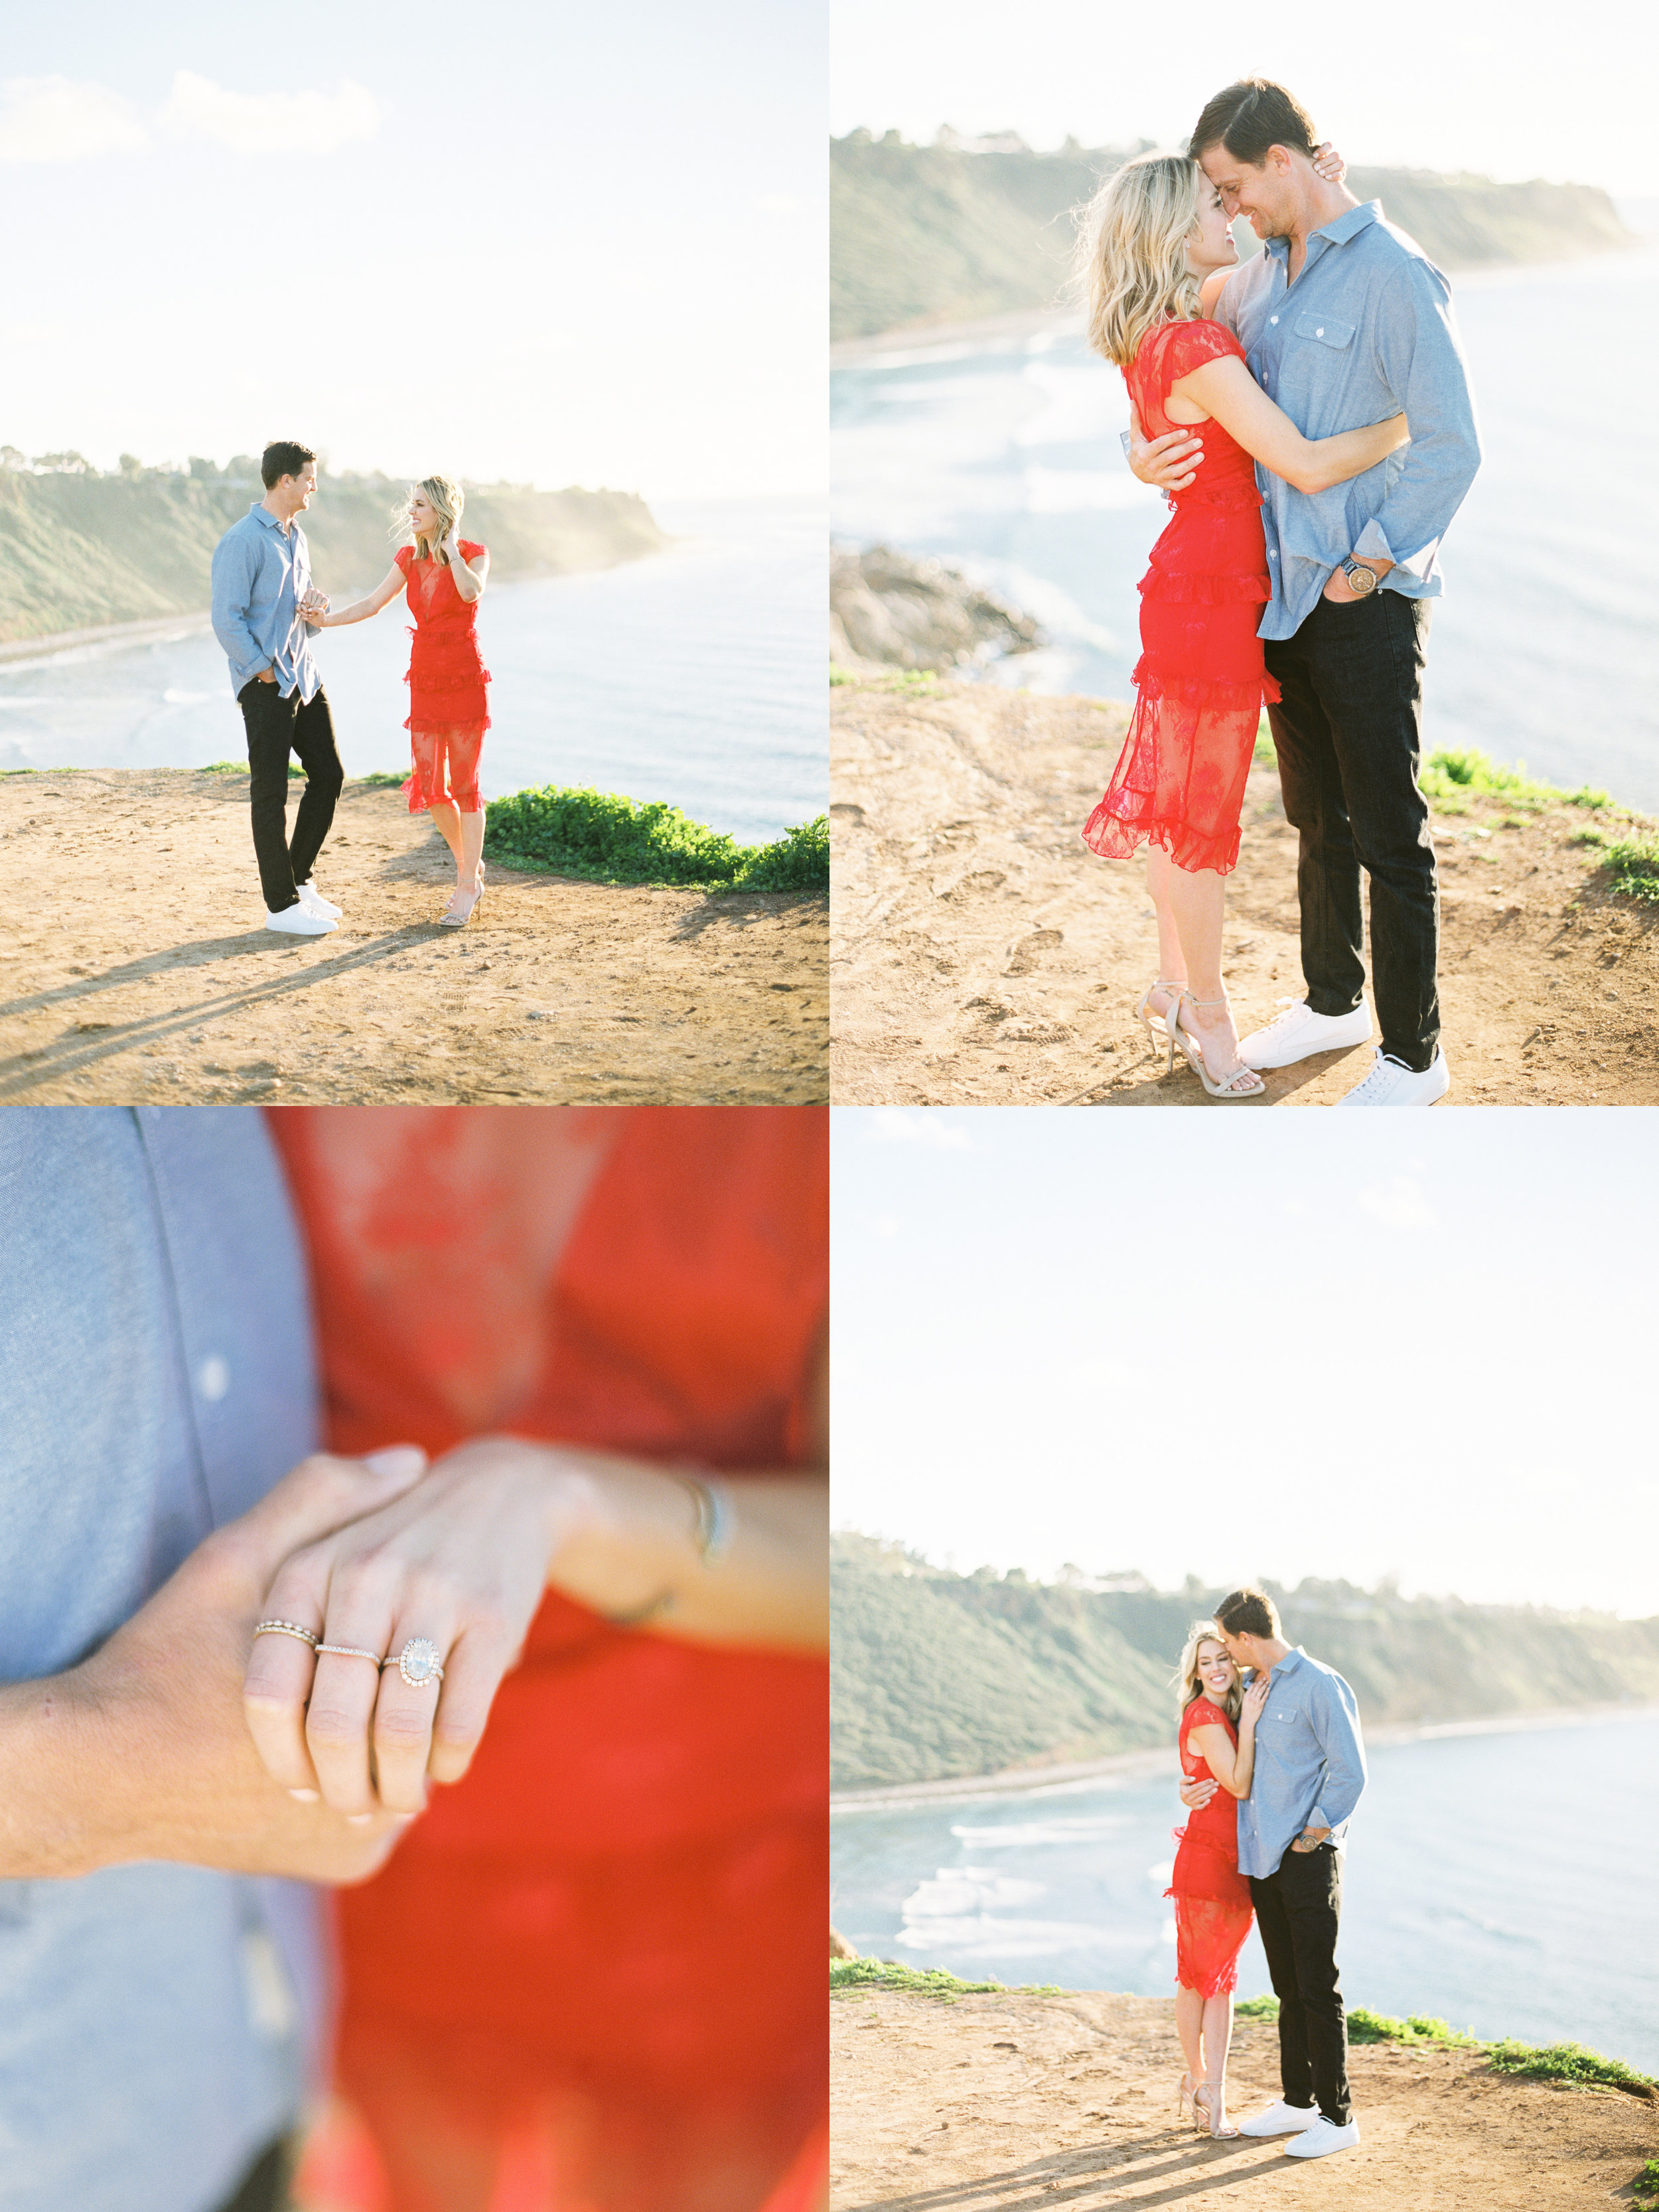 Rachel Owens Photography - Palos Verdes Beach Engagement - 2.jpg